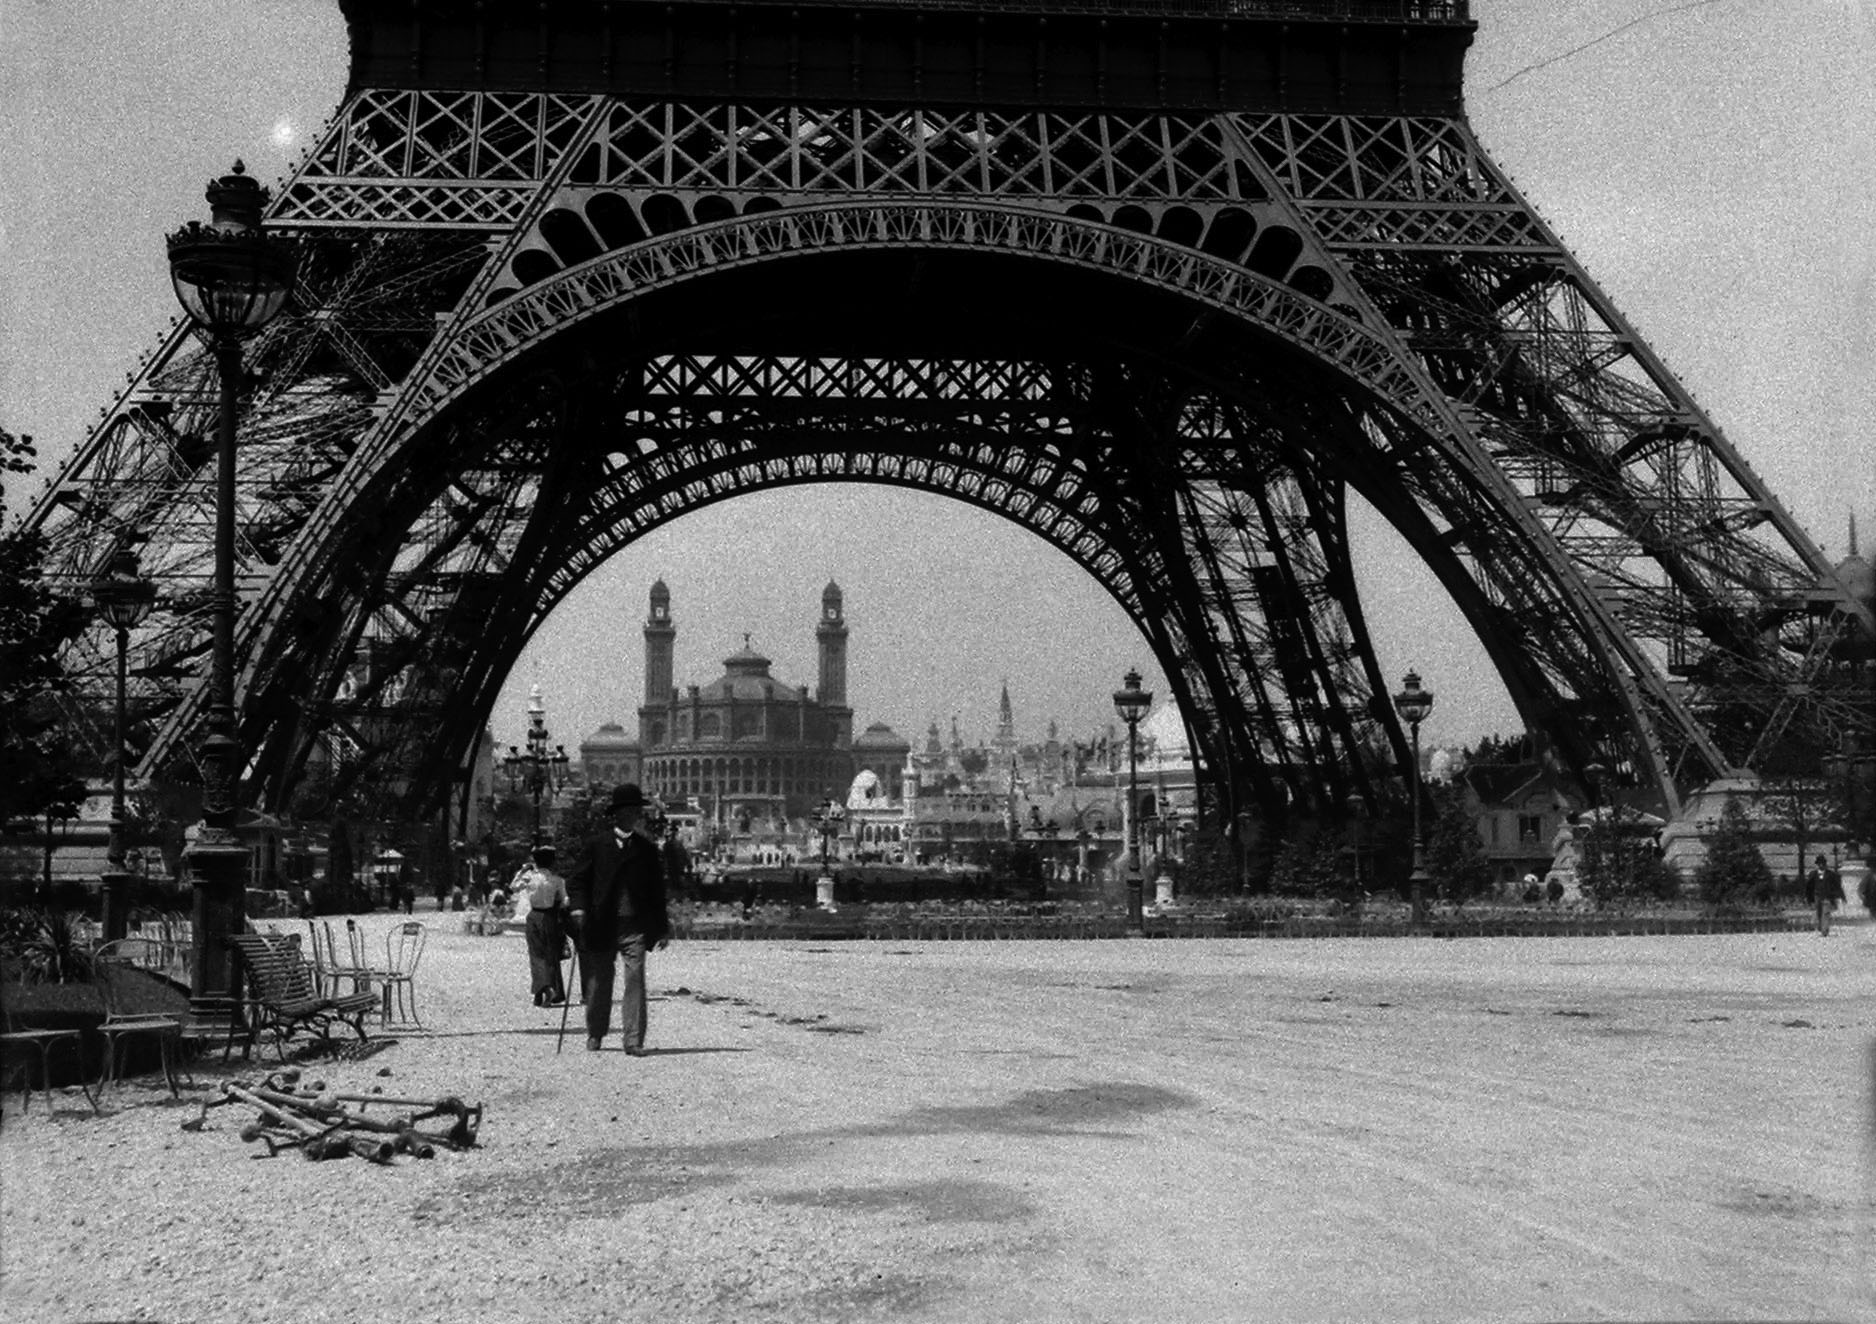 The  Eiffel Tower  and the  Trocadero  Palace in the background, 1900